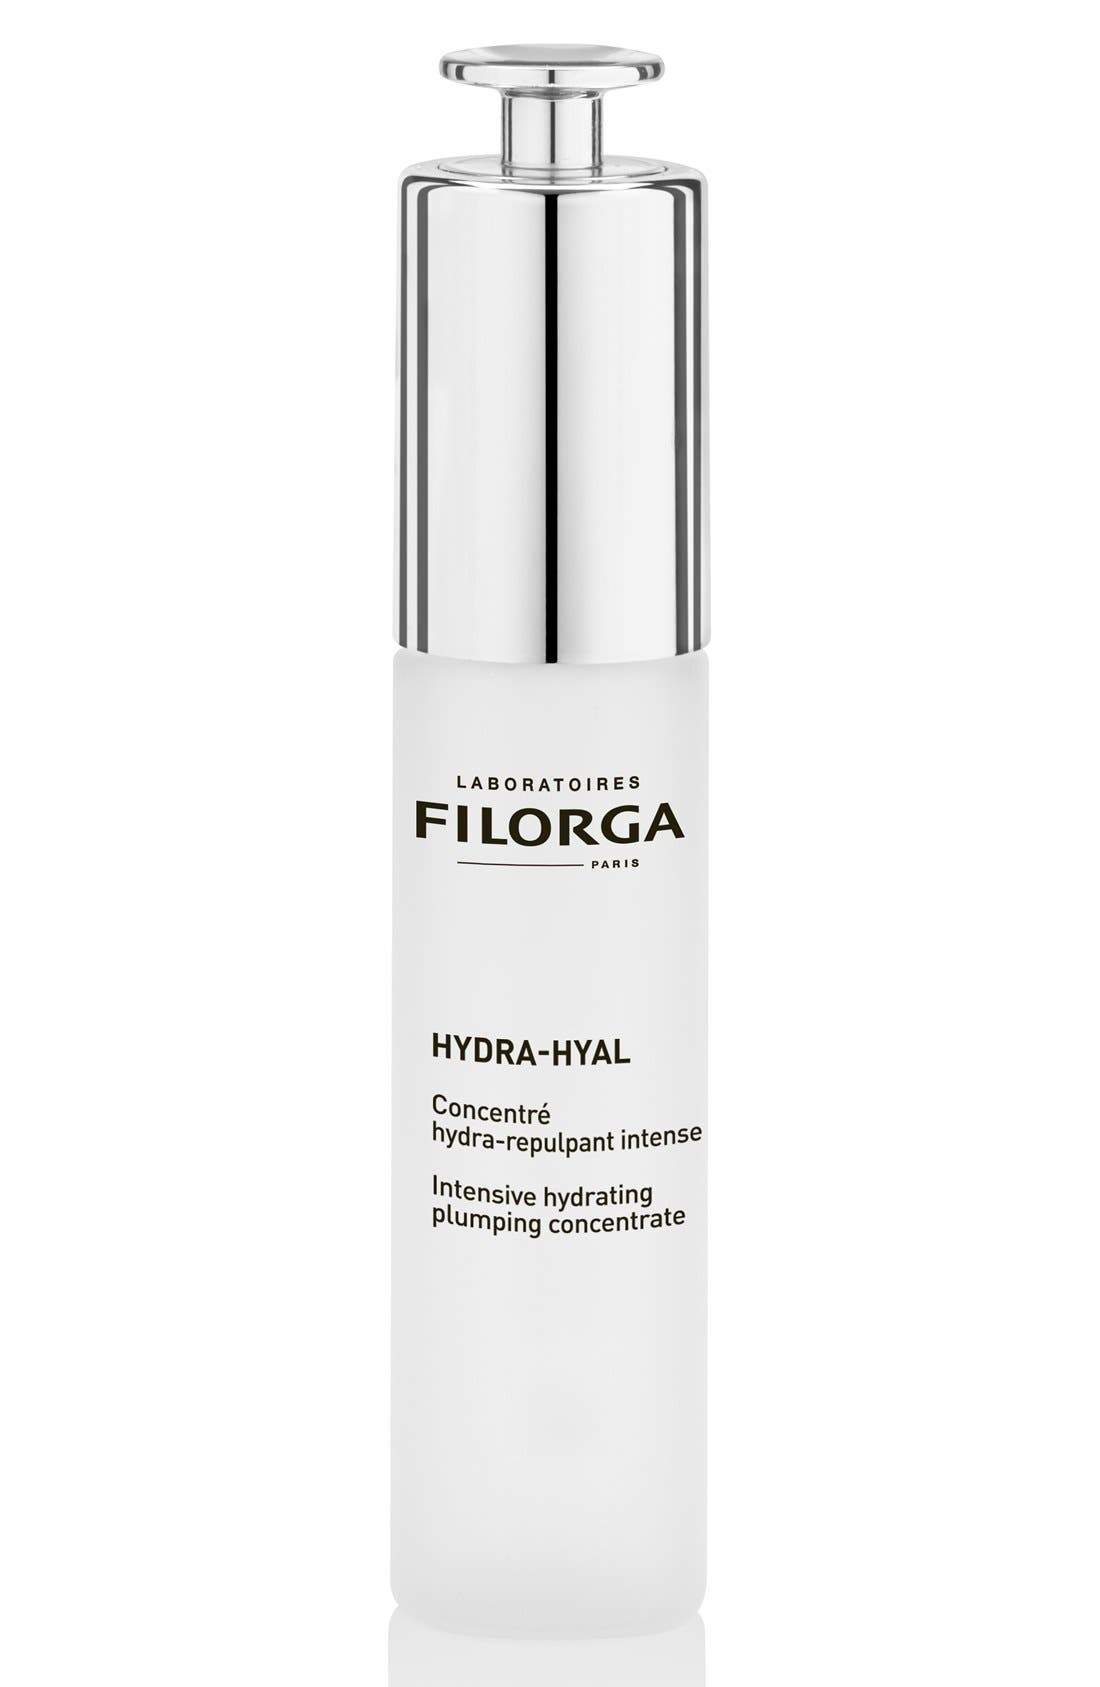 Filorga 'Hydra-Hyal®' Intensive Hydrating Plumping Concentrate